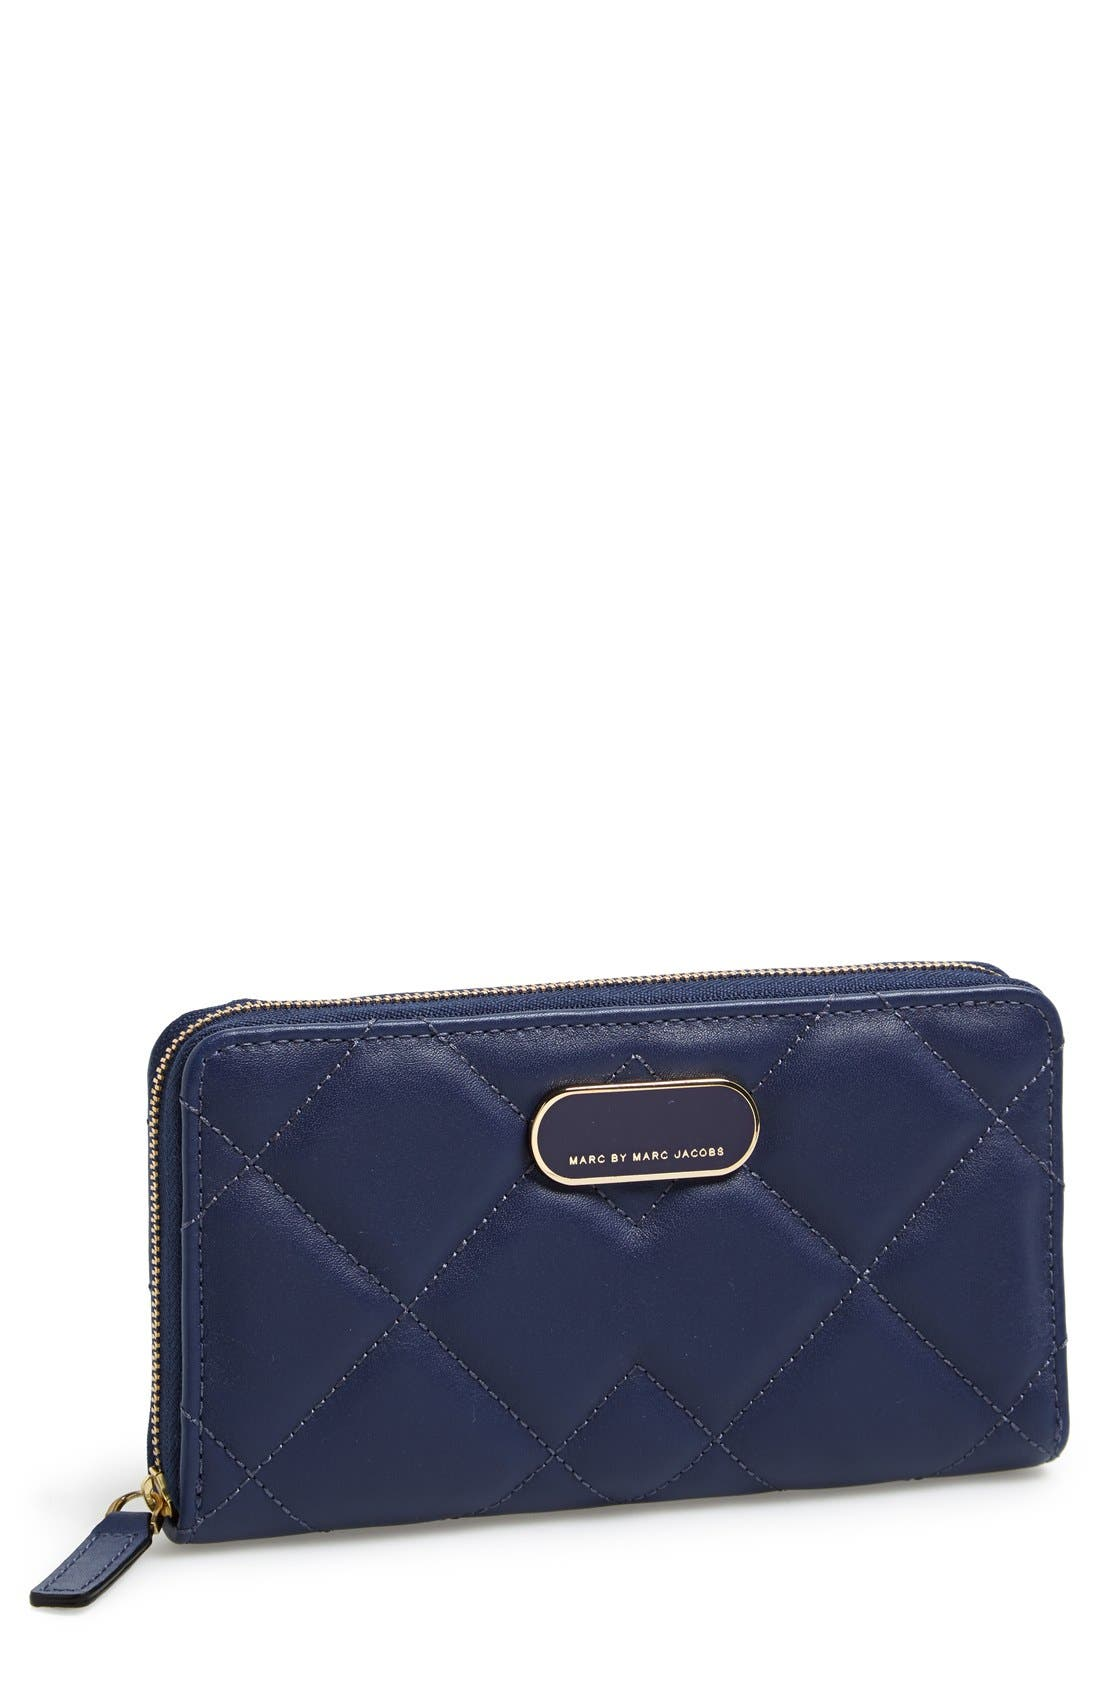 Alternate Image 1 Selected - MARC BY MARC JACOBS 'Quilty Vertical Zippy' Leather Wallet